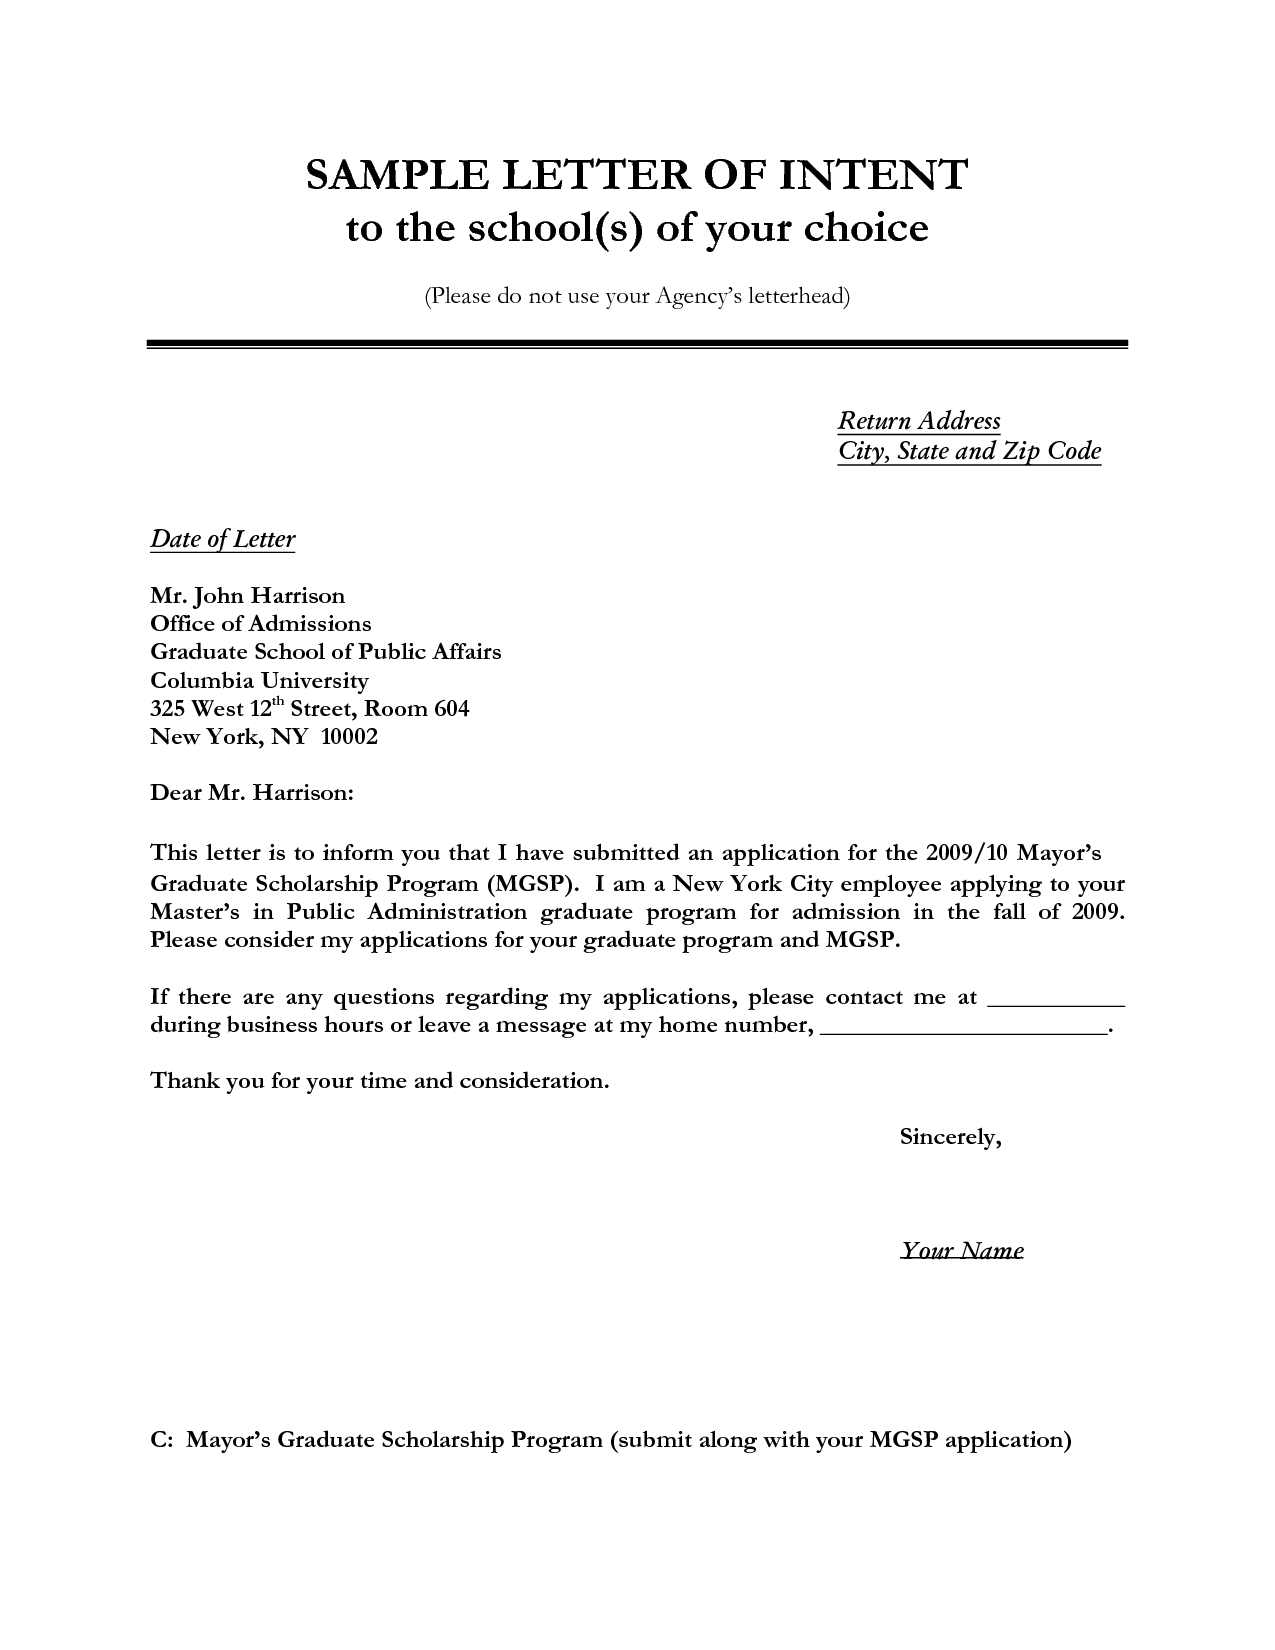 real estate letter of intent template Collection-Letter of intent sample 5-h